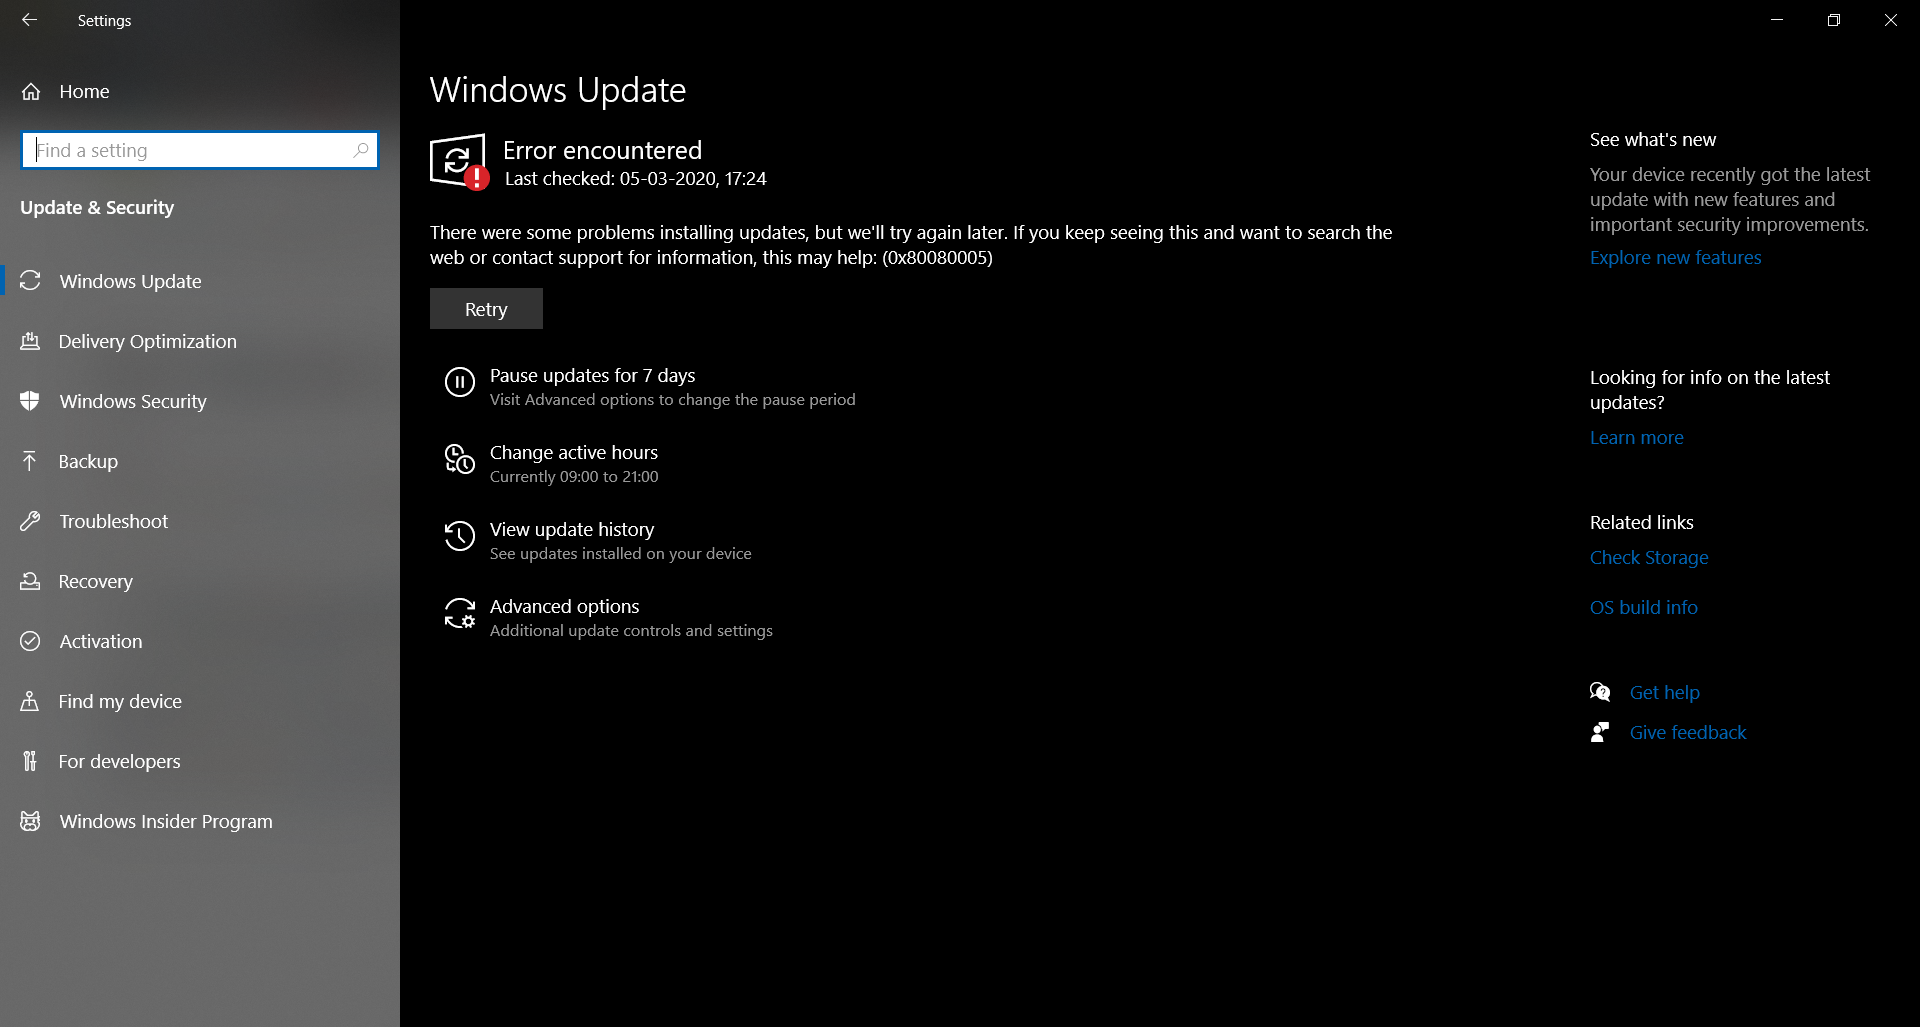 Windows Update and Windows Defender 46153ad8-91d4-4c11-88e9-320705e76a6c?upload=true.png